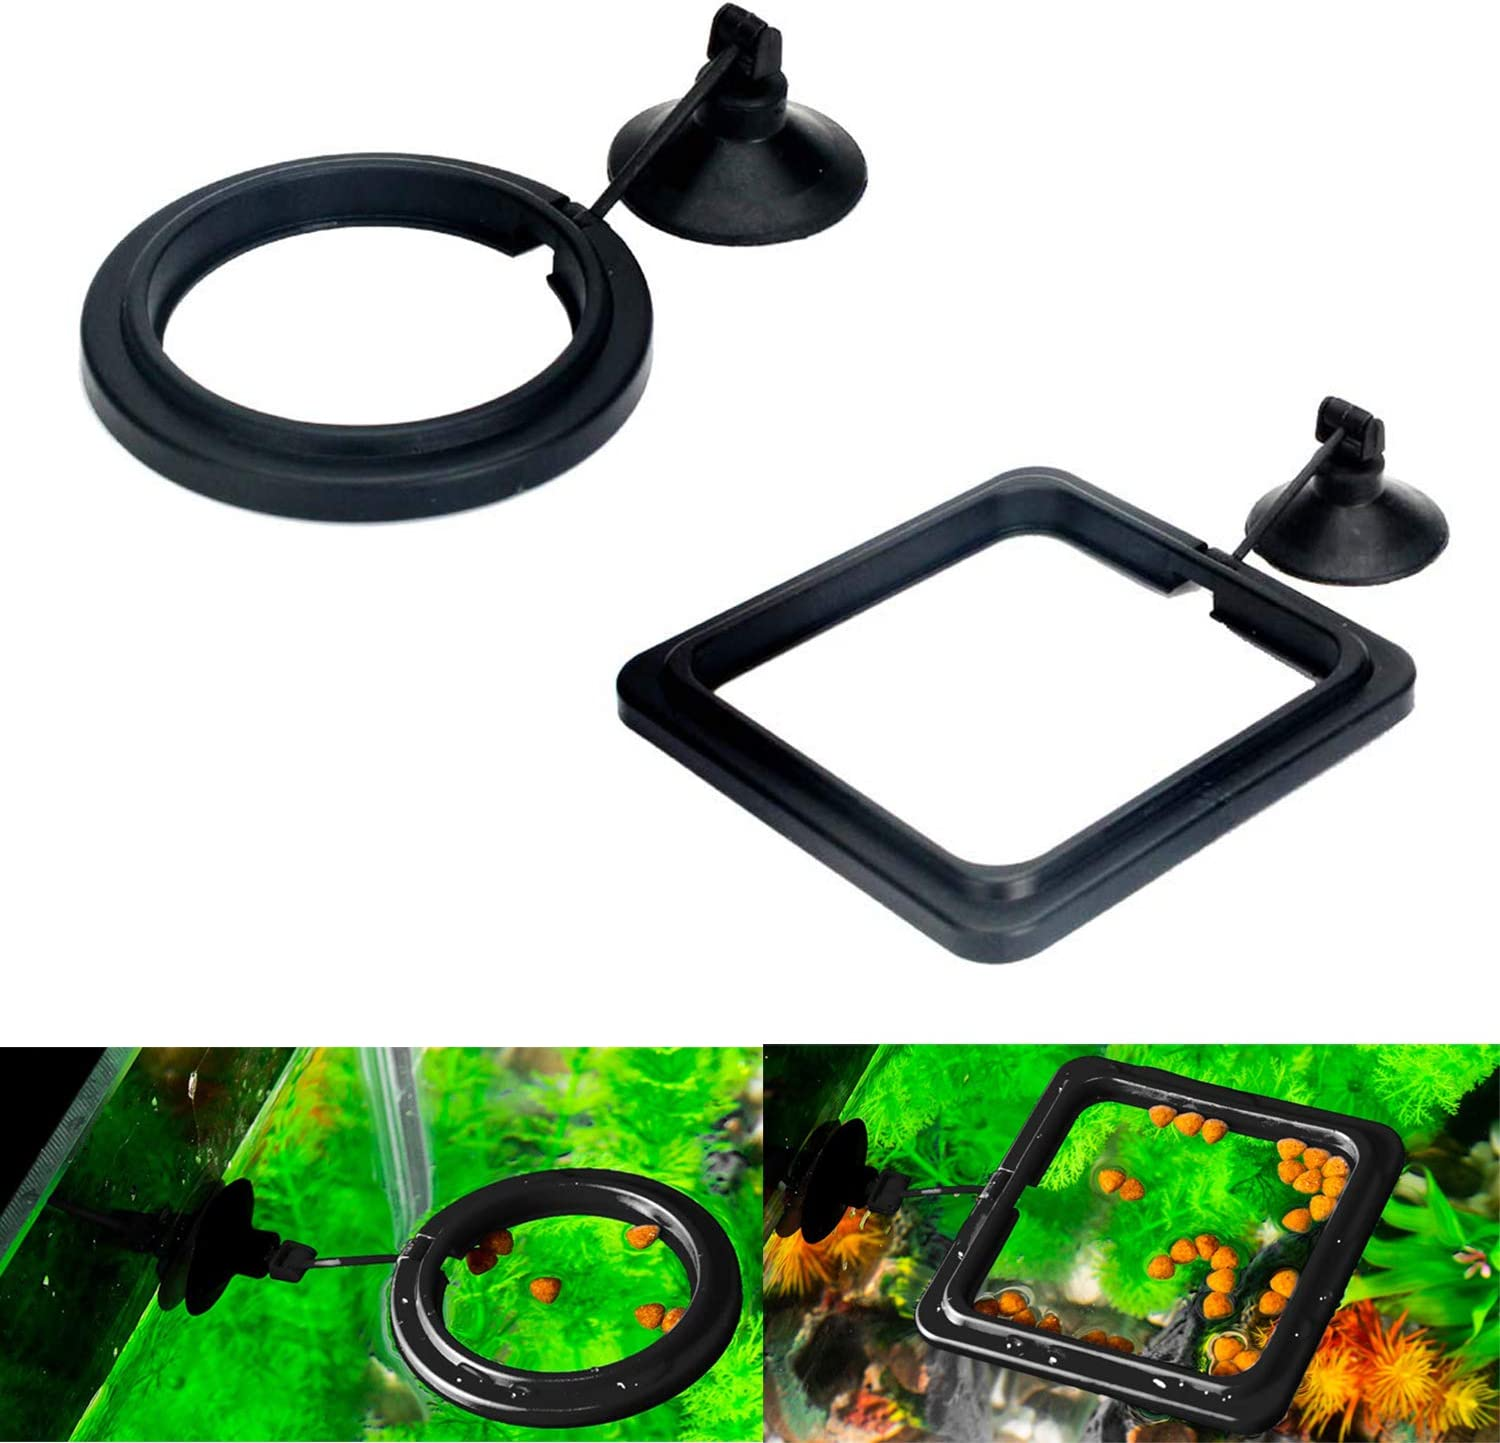 Maxmoral 2pcs Black Fish Feeding Ring Aquarium Fish Tank Mariculture Fishes Floating Food Feeder Circle with Suction Cup(Round and Square)